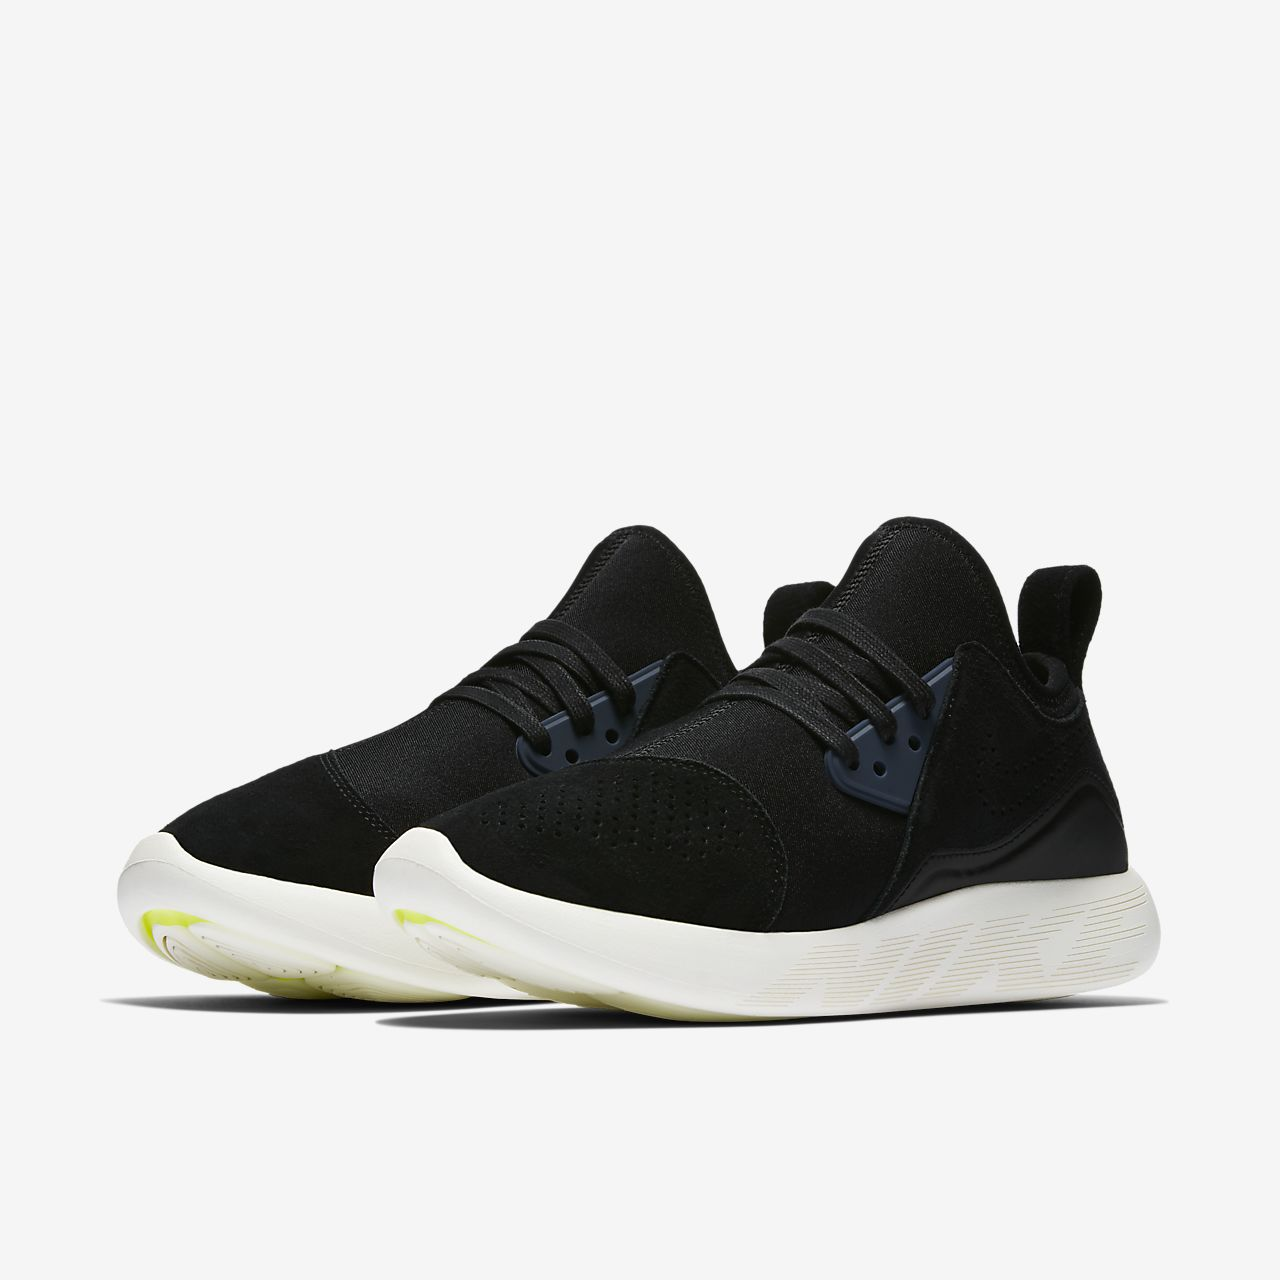 Low Resolution Nike LunarCharge Premium Women's Shoe Nike LunarCharge  Premium Women's Shoe